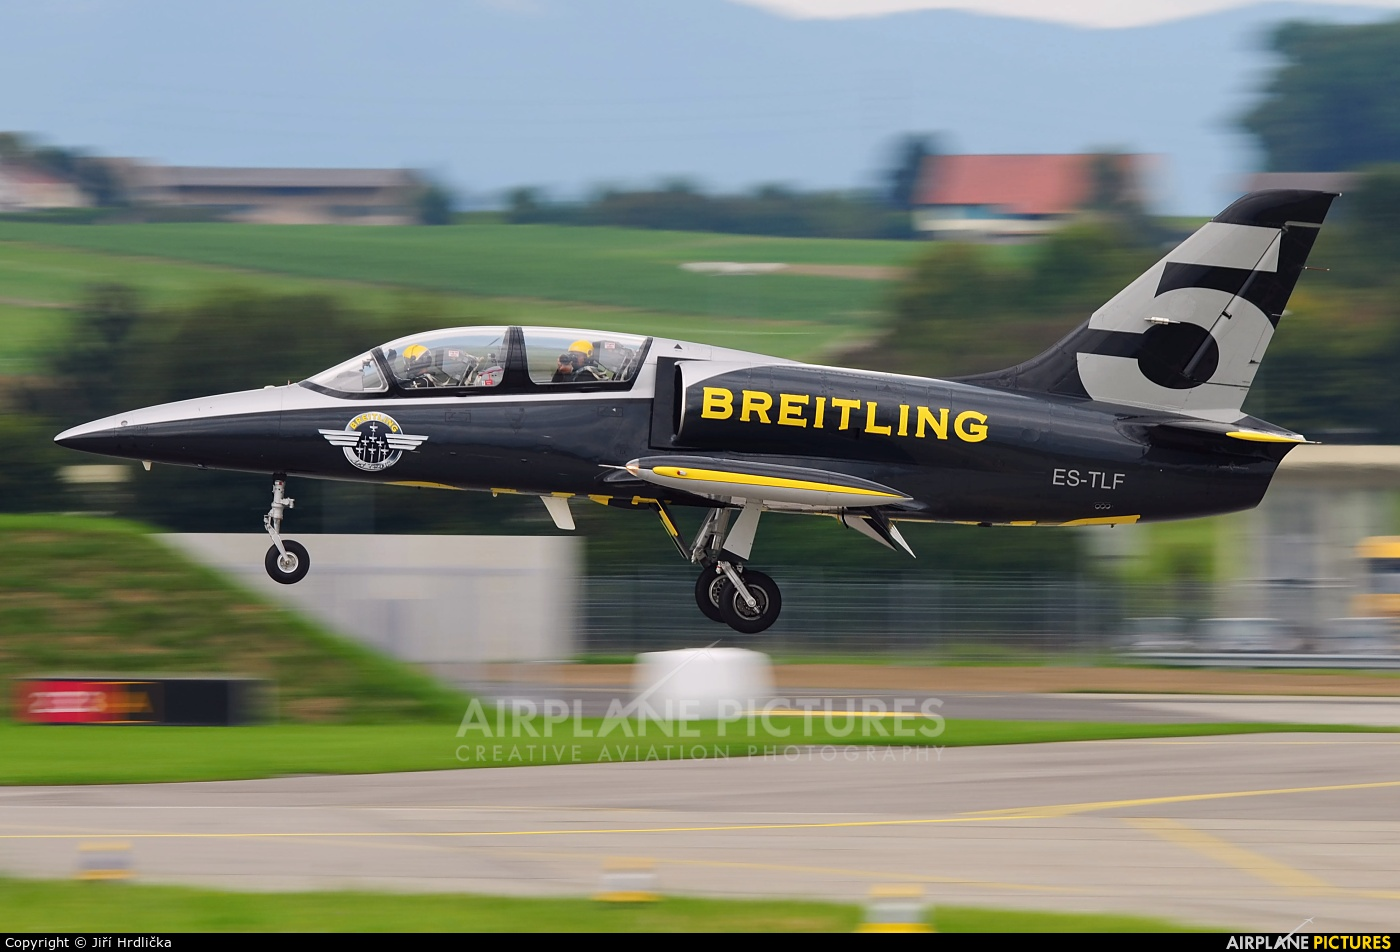 Breitling Jet Team ES-TLF aircraft at Payerne